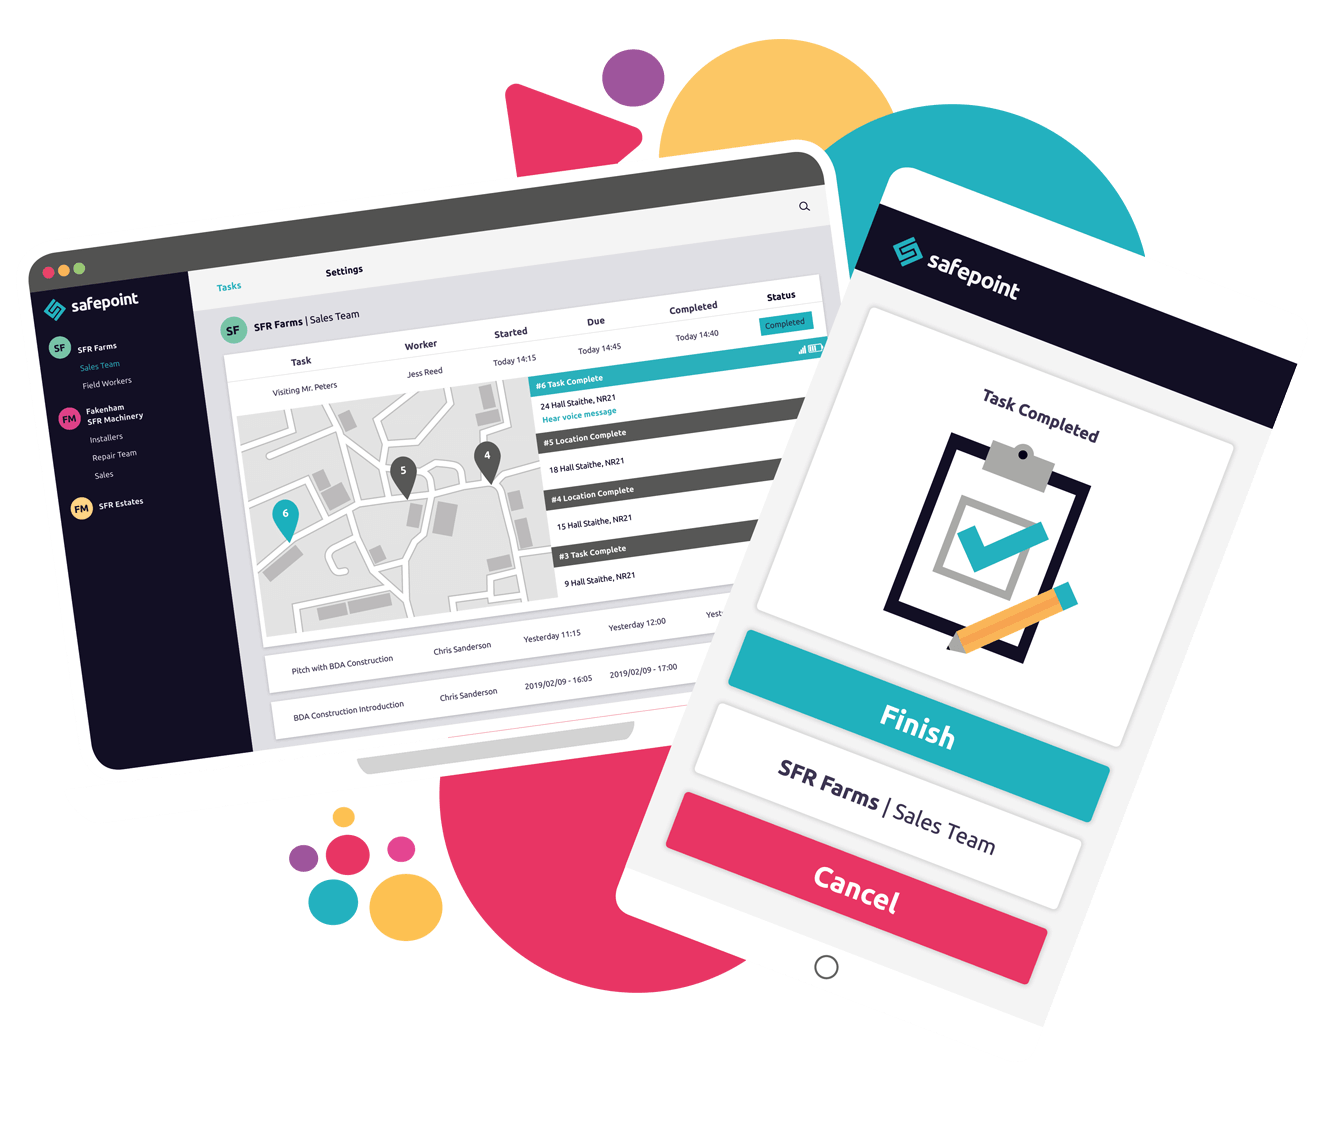 Safepoint-lone-worker-portal-and-app-2019-v4.png